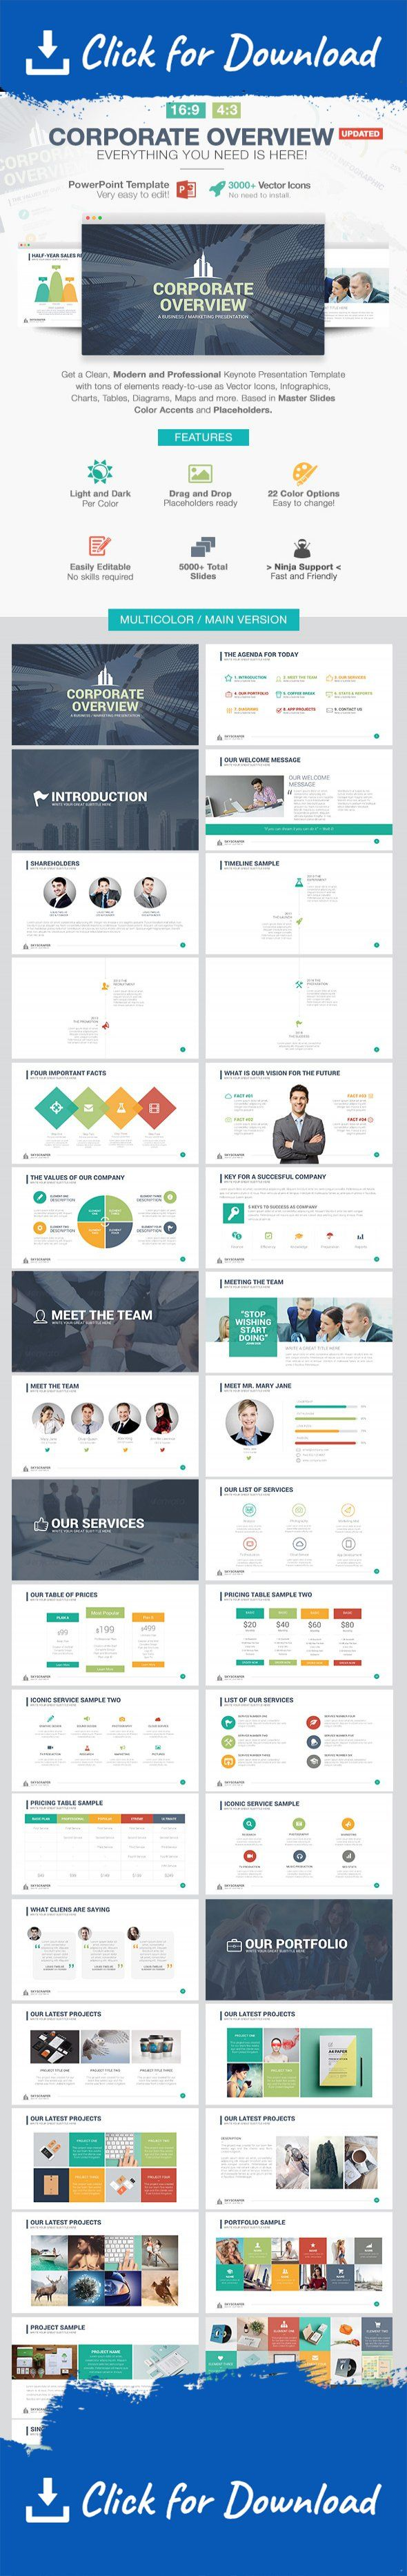 Check my latest presentation  Live Preview: Light and Dark Version  You may also like  What our clients are saying          About This Animated PPT Template is the result of severals days of hard work and sleepless nights, but I'm proud to present to you this great, multipurpose, modern, clean, very easy to use and professional Powerpoint Presentation Template perfect for your business!  I have prepared modern colors Handmade Infographic, Chart, Process, Diagram, Flowchart, Timeline, SWO...